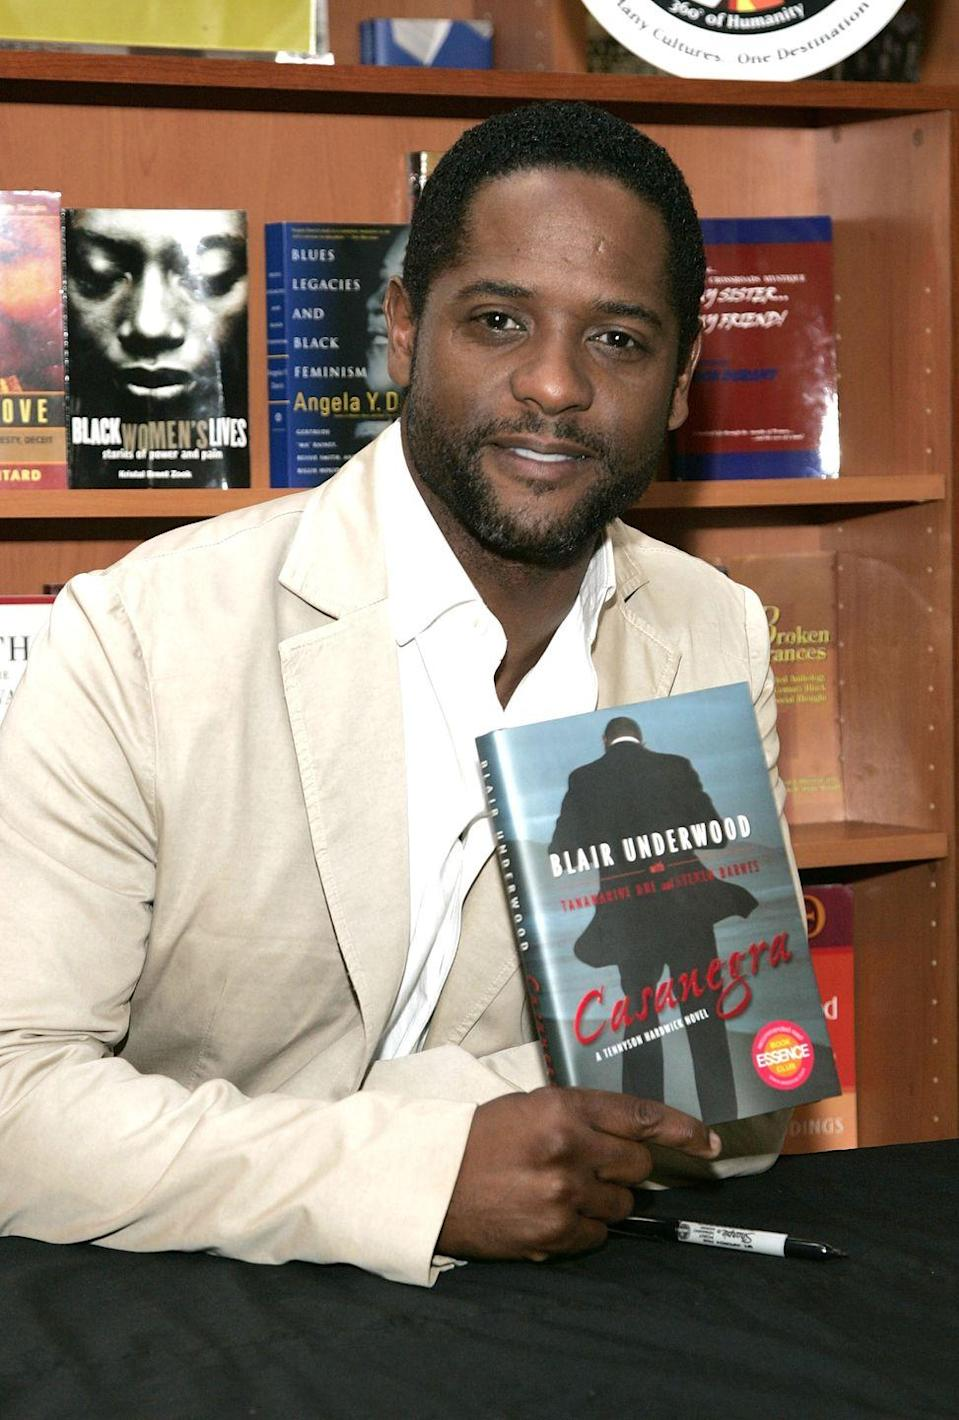 "<p>For those looking for a book about a sexy, former male escort turned amateur sleuth (and who isn't?), look no further than the Tennyson Hardwick series by Blair Underwood. The <em>L.A. Law</em> star set the mystery novels against the backdrop of Hollywood, hip-hop, violence, and betrayal that results in an erotic, noir read.</p><p><em>Casanegra</em>, the title a tongue-in-cheek reference to <em>Casablanca,</em> according to the <em><a href=""https://www.latimes.com/archives/la-xpm-2007-aug-14-et-underwood14-story.html"" rel=""nofollow noopener"" target=""_blank"" data-ylk=""slk:Los Angeles Times"" class=""link rapid-noclick-resp"">Los Angeles Times</a></em>, is the first novel to feature Hardwick (there are now four), and Blair told the paper that he hopes there is a <em>Casanegra</em> movie one day. Us too, Blair. Us, too. </p><p><a class=""link rapid-noclick-resp"" href=""https://www.amazon.com/Casanegra-Blair-Underwood/dp/0743287312/ref=sr_1_4?crid=269AKXI4931HP&dchild=1&keywords=blair+underwood+books&qid=1599799930&s=books&sprefix=blair+under%2Cstripbooks%2C162&sr=1-4&tag=syn-yahoo-20&ascsubtag=%5Bartid%7C2139.g.34385633%5Bsrc%7Cyahoo-us"" rel=""nofollow noopener"" target=""_blank"" data-ylk=""slk:Buy the Book"">Buy the Book</a></p>"